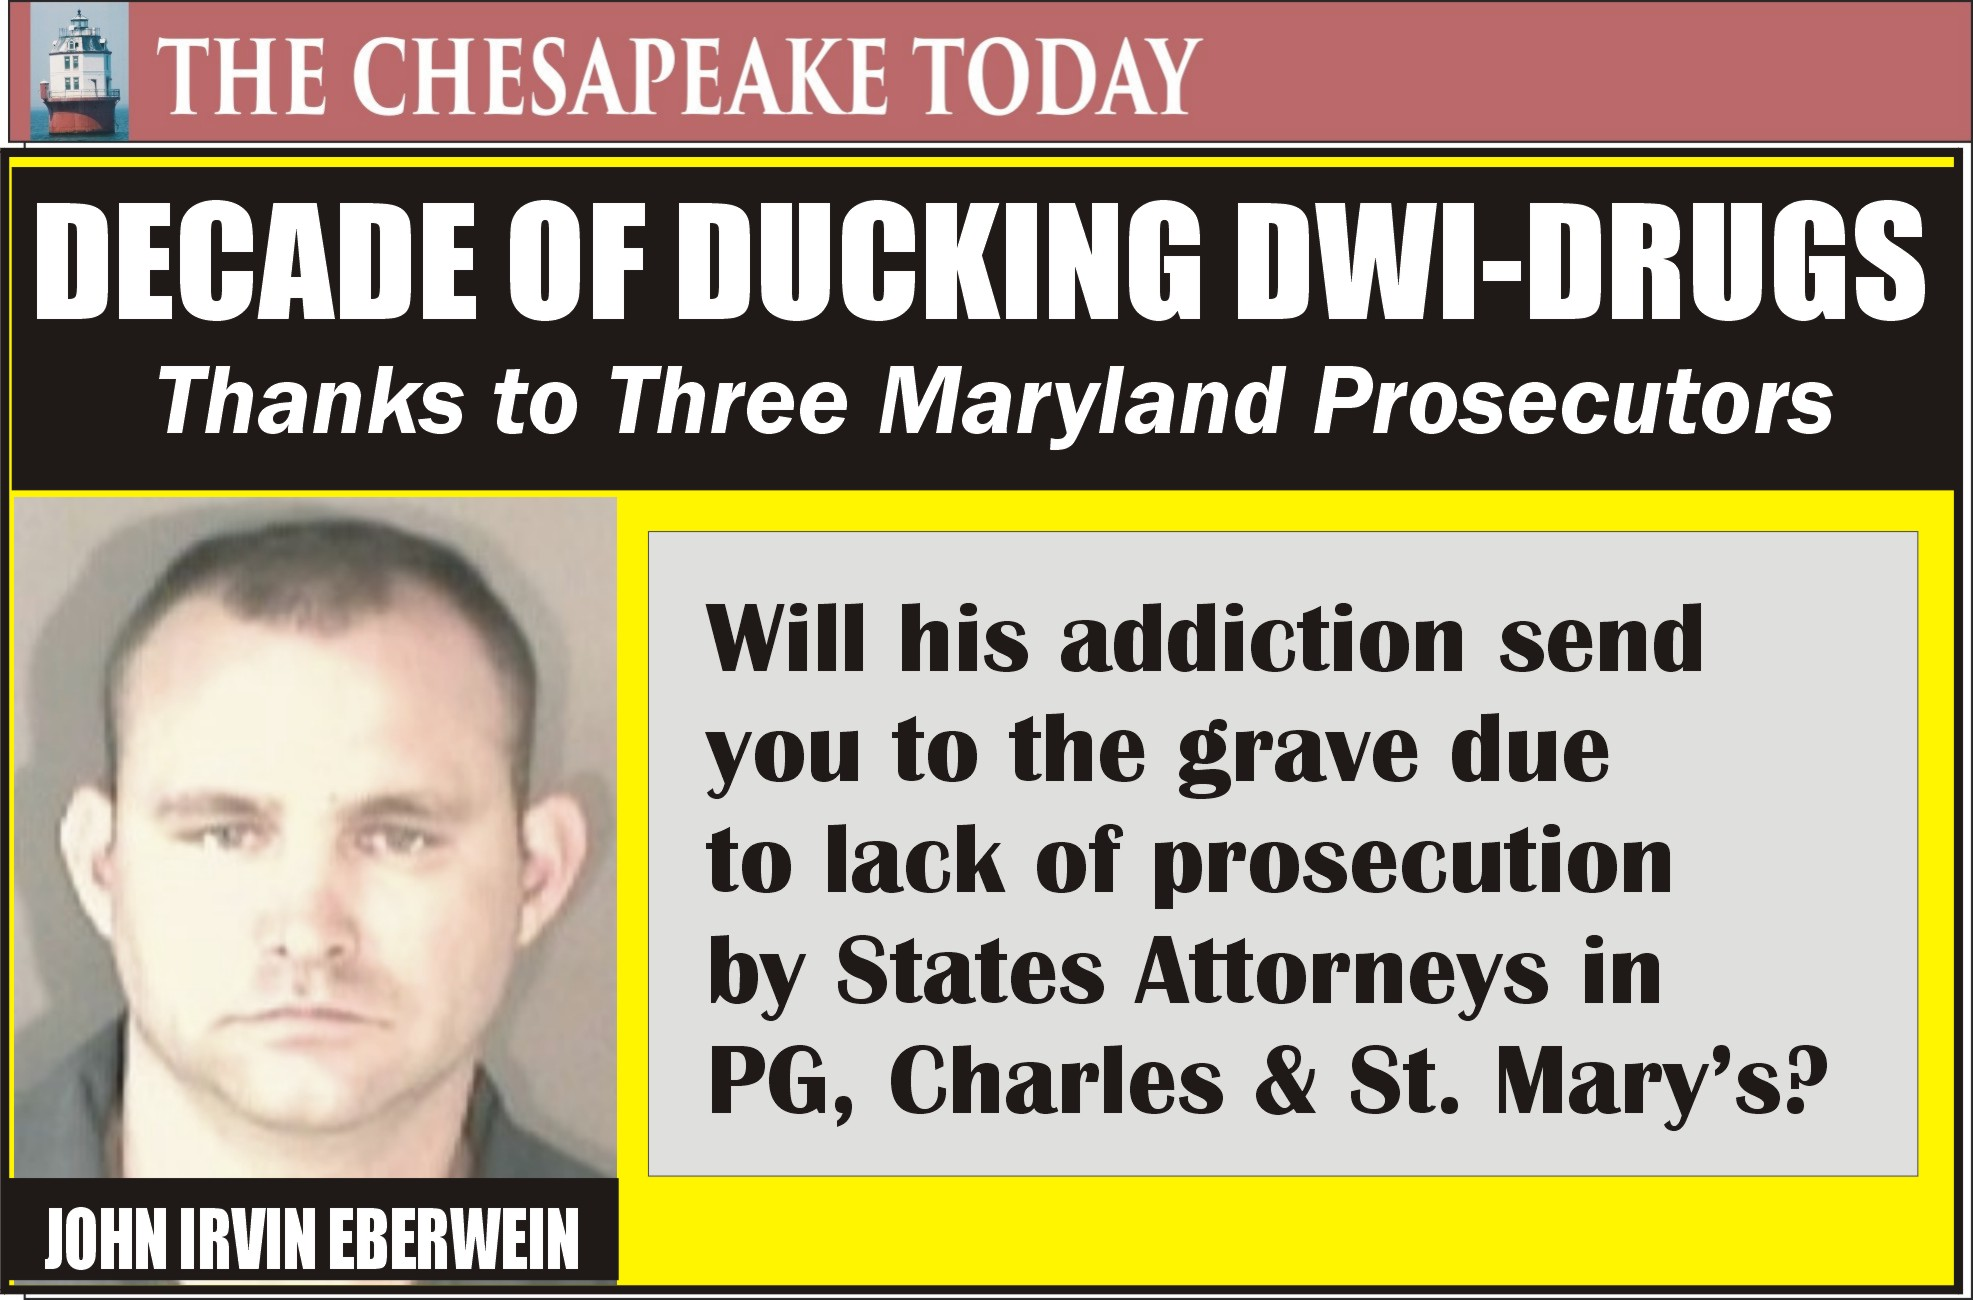 COURT NEWS: Does Domestic Abuser John Eberwein Get a Free Pass from Prosecutors by Flipping on Drug Dealers as a Confidential Informant?